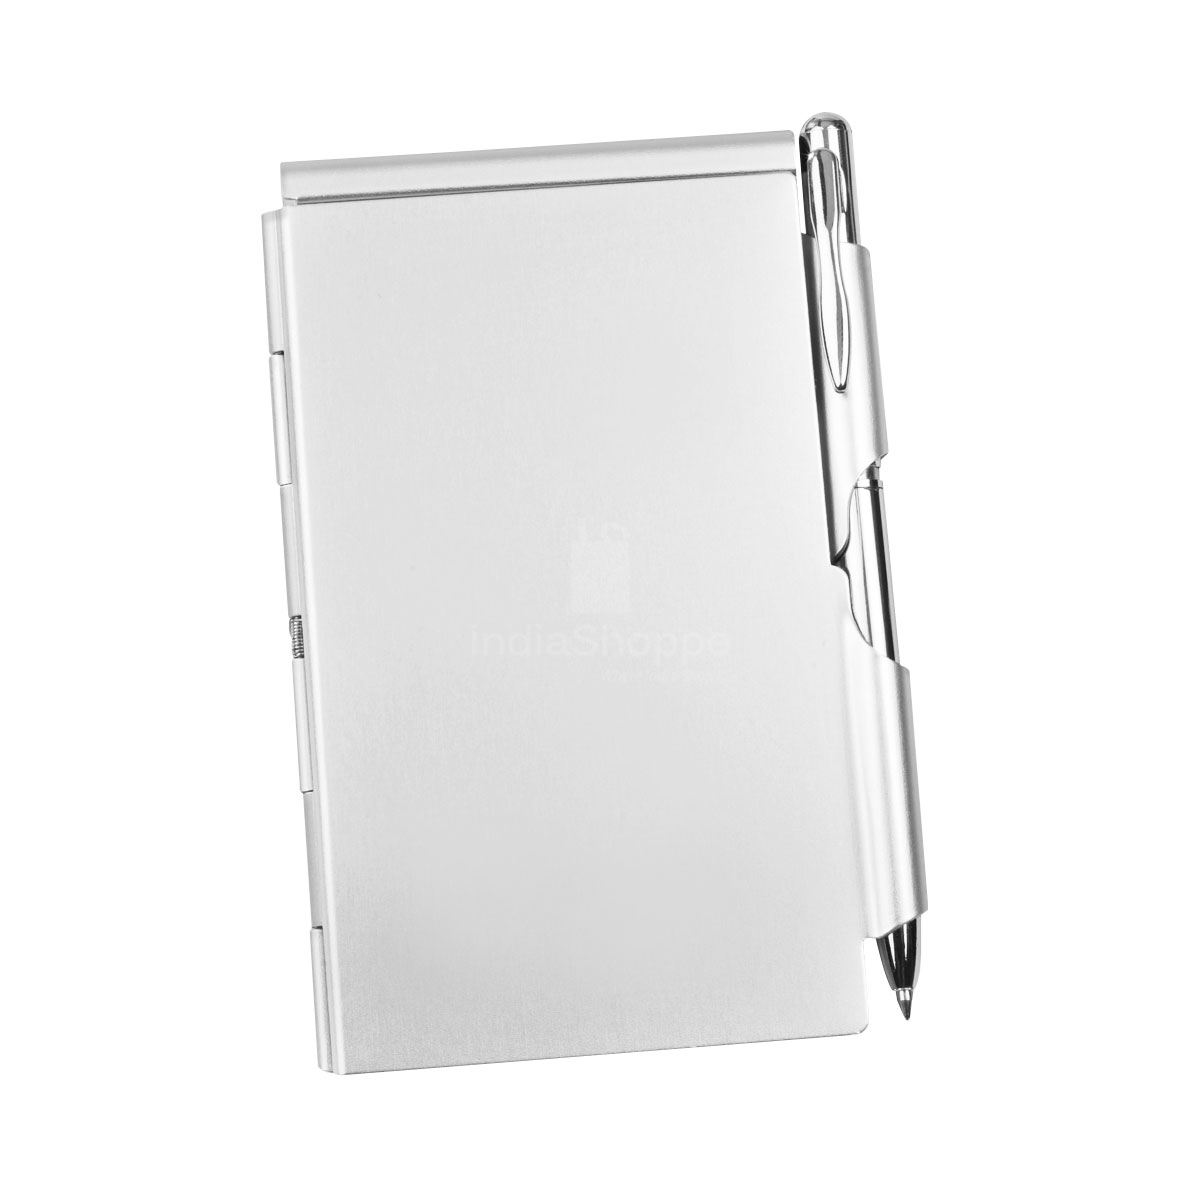 Writing Pad Royalty Free Stock Image - Image: 2797996